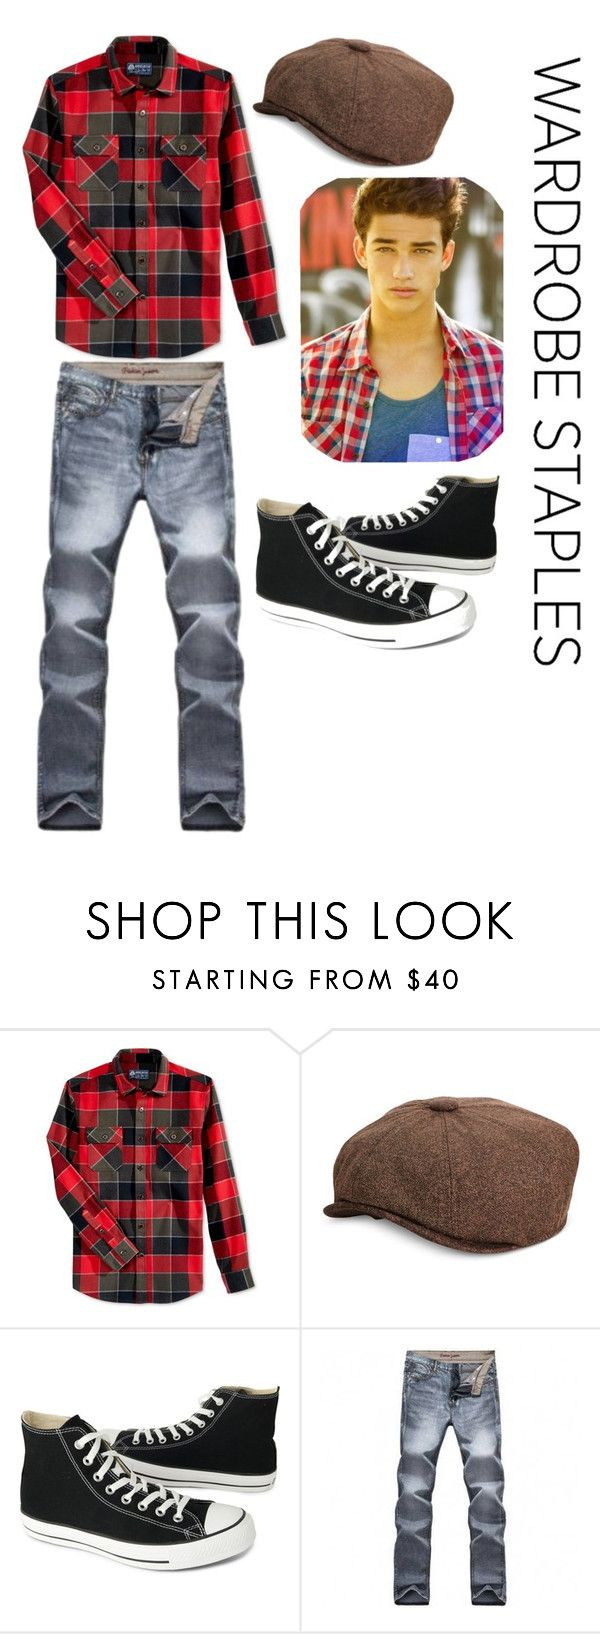 """Red-plaid and newsboy hat"" by nimas on Polyvore featuring American Rag Cie, Sean John, Converse, men's fashion, menswear, plaid, MensFashion, WardrobeStaples, newsboyhat and guymodels"